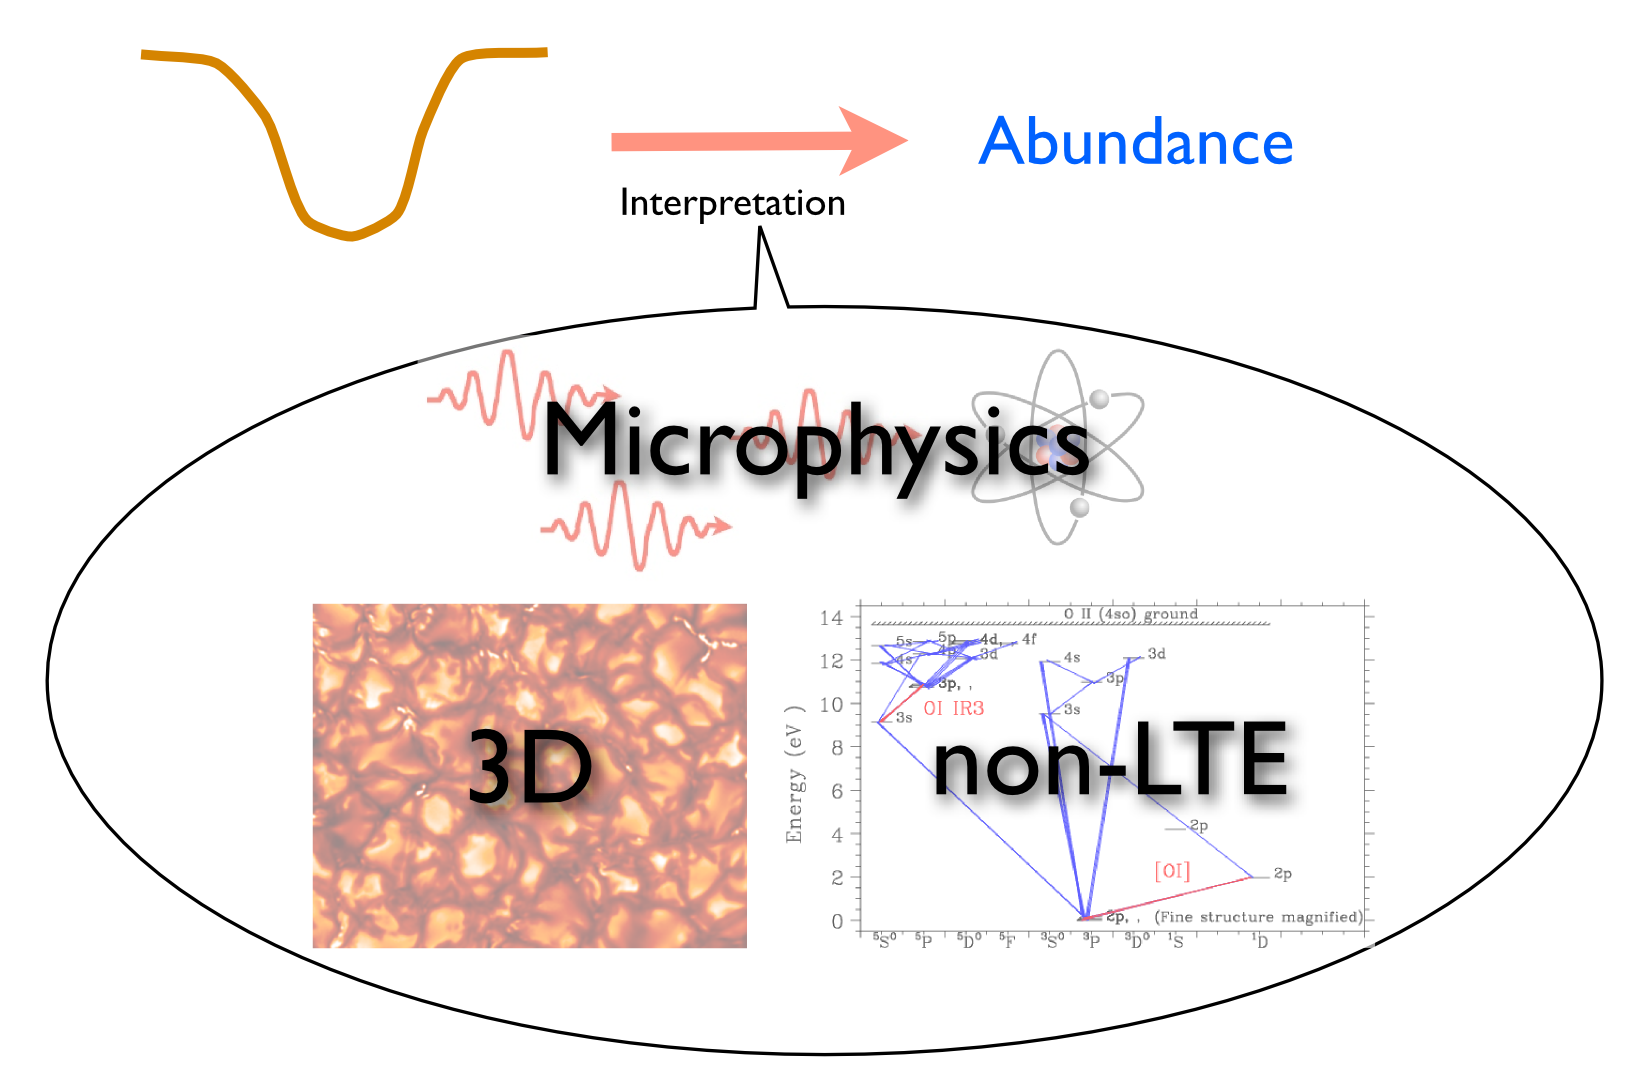 To achieve accurate stellar abundances we need the best possible physics.  This means accurate descriptions of the microphysics, coupled with realistic modelling of the atmospheric structure in three dimensions and radiative transfer beyond the classical assumption of local thermodynamical equilibrium (LTE).